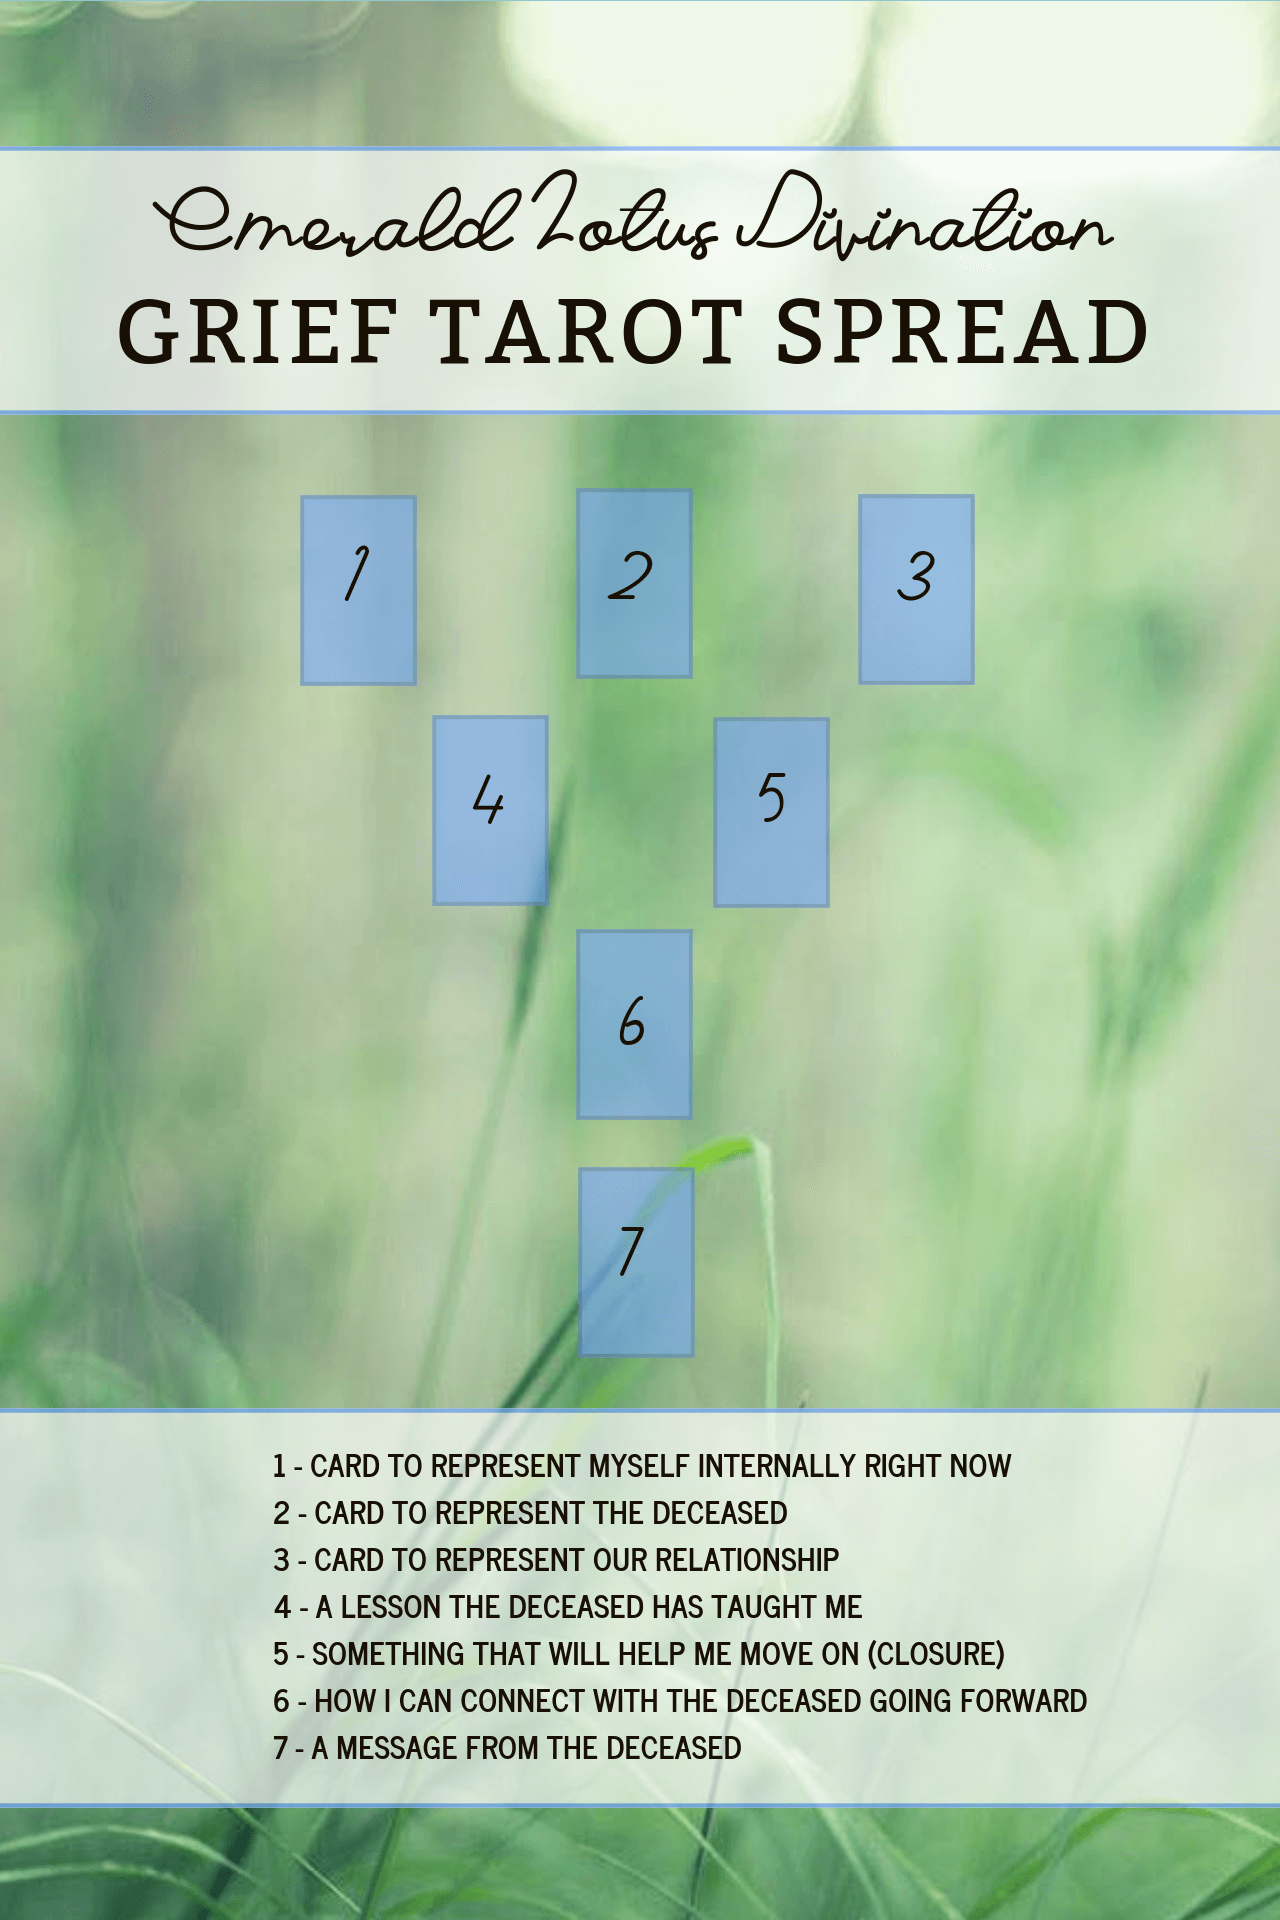 Grief-Tarot-Spread-1.png